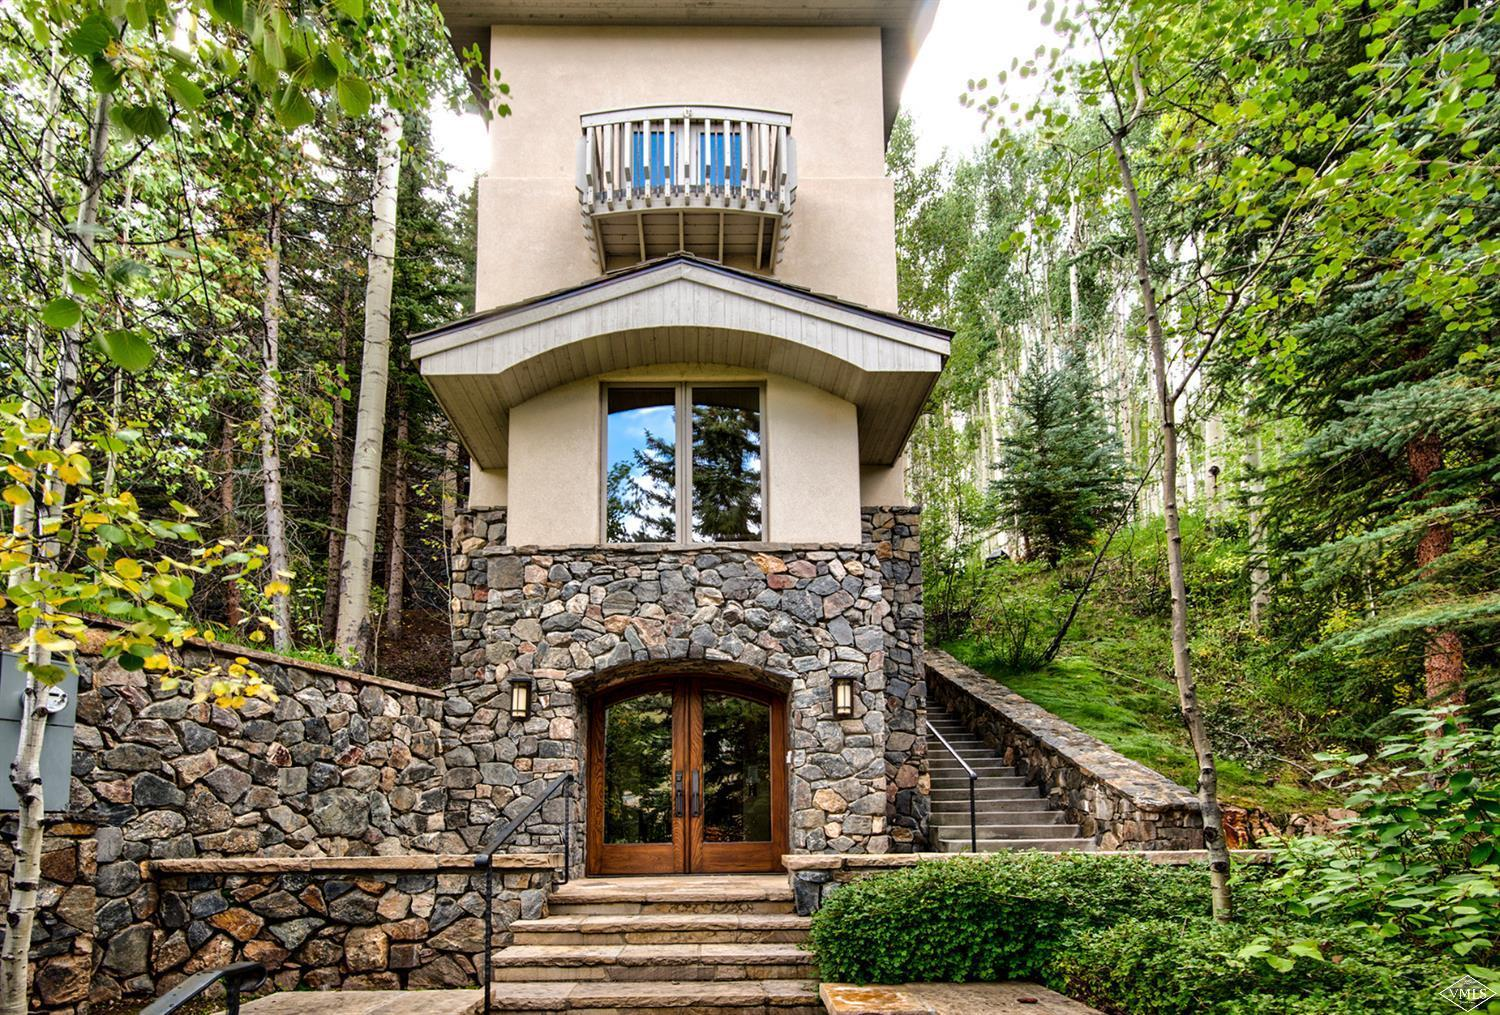 $549,000 PRICE REDUCTION!  Welcome to 636a Forest Road located just a short walk to Born Free ski run and perched amongst the tall pines of Vail ski mountain. Enter via a heated front entry and driveway off of Vail's coveted West Forest Road.  Access the elevator from the ground level (garage and ski storage) and exit on the third level where you will find a beautiful gourmet kitchen with hearth room, two family rooms featuring a wood burning fireplace, formal dining area and powder bathroom.  Adjacent to the kitchen and breakfast nook there is a lovely heated patio with sunken hot tub and entertaining space providing an amazing alpine outdoor experience.  The spacious great room is ideal for entertaining and offers a separate space for reading or relaxing. On the top level guests will find the primary master suite which backs to the aspens and spruce trees.  The suite features a fireplace, walk-in closet, deck and elegant bathroom with steam shower, heated floors, jetted tub and private rear patio for convenient access to the outdoor hot tub.  Additional features include a secondary master suite, custom bunk room, large laundry room, ample 2-car garage with space for 2-3 cars on the heated driveway.  This luxurious 6-bedroom, 5 1/2 bath home has been completely remodeled by a prominent Vail interior designer and is offered fully furnished.